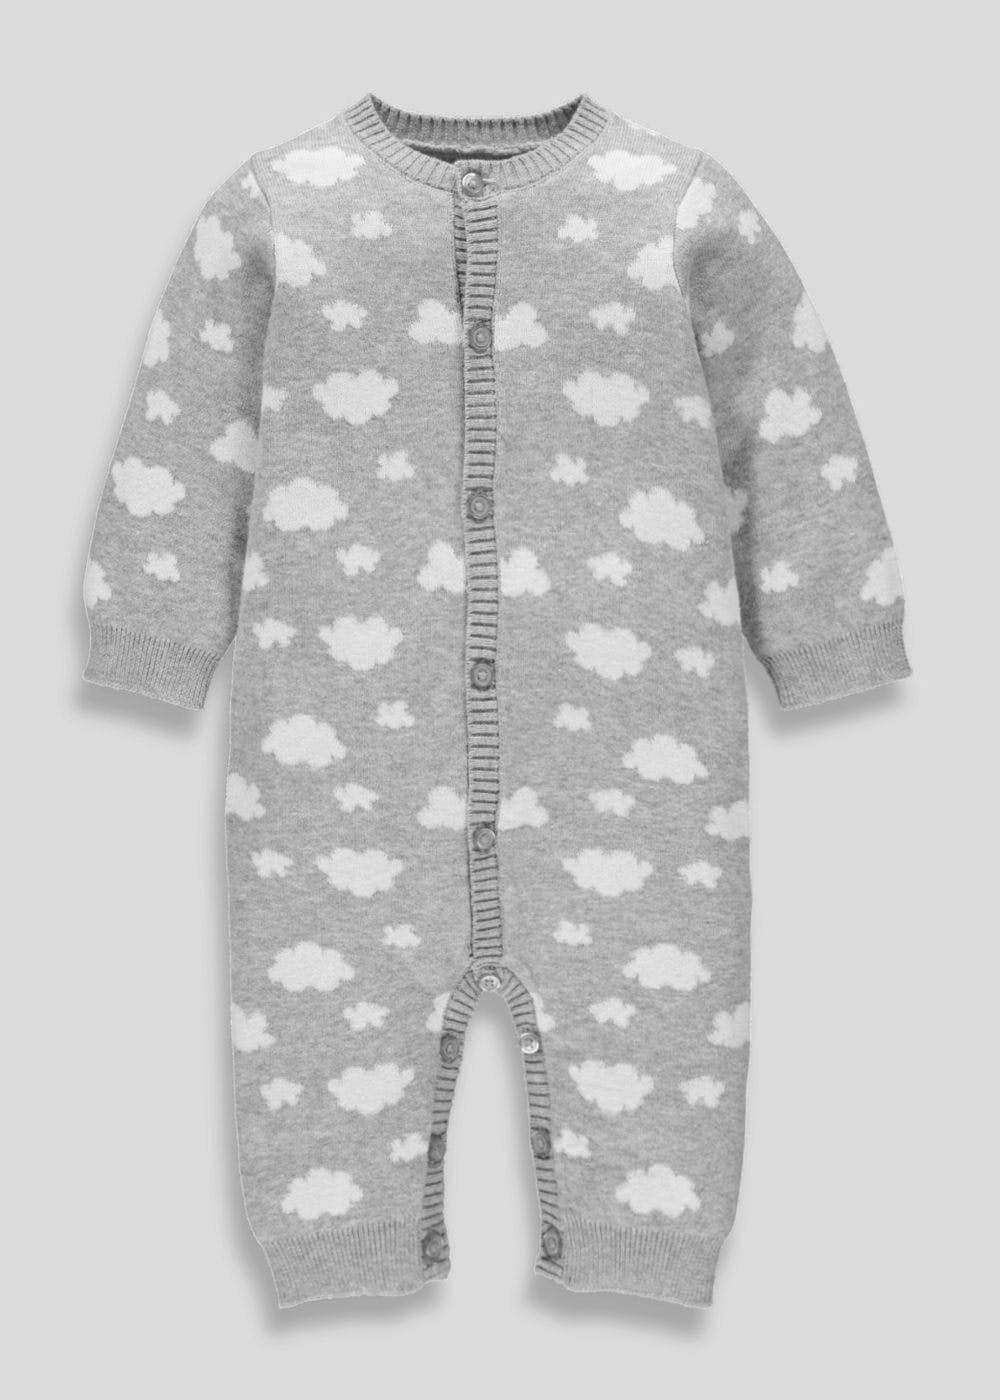 4d1ba6f37 Your baby will feel so cosy dressed in this adorable romper, crafted from  super soft knit which is perfect for delicate skin. The grey design is  adorned ...